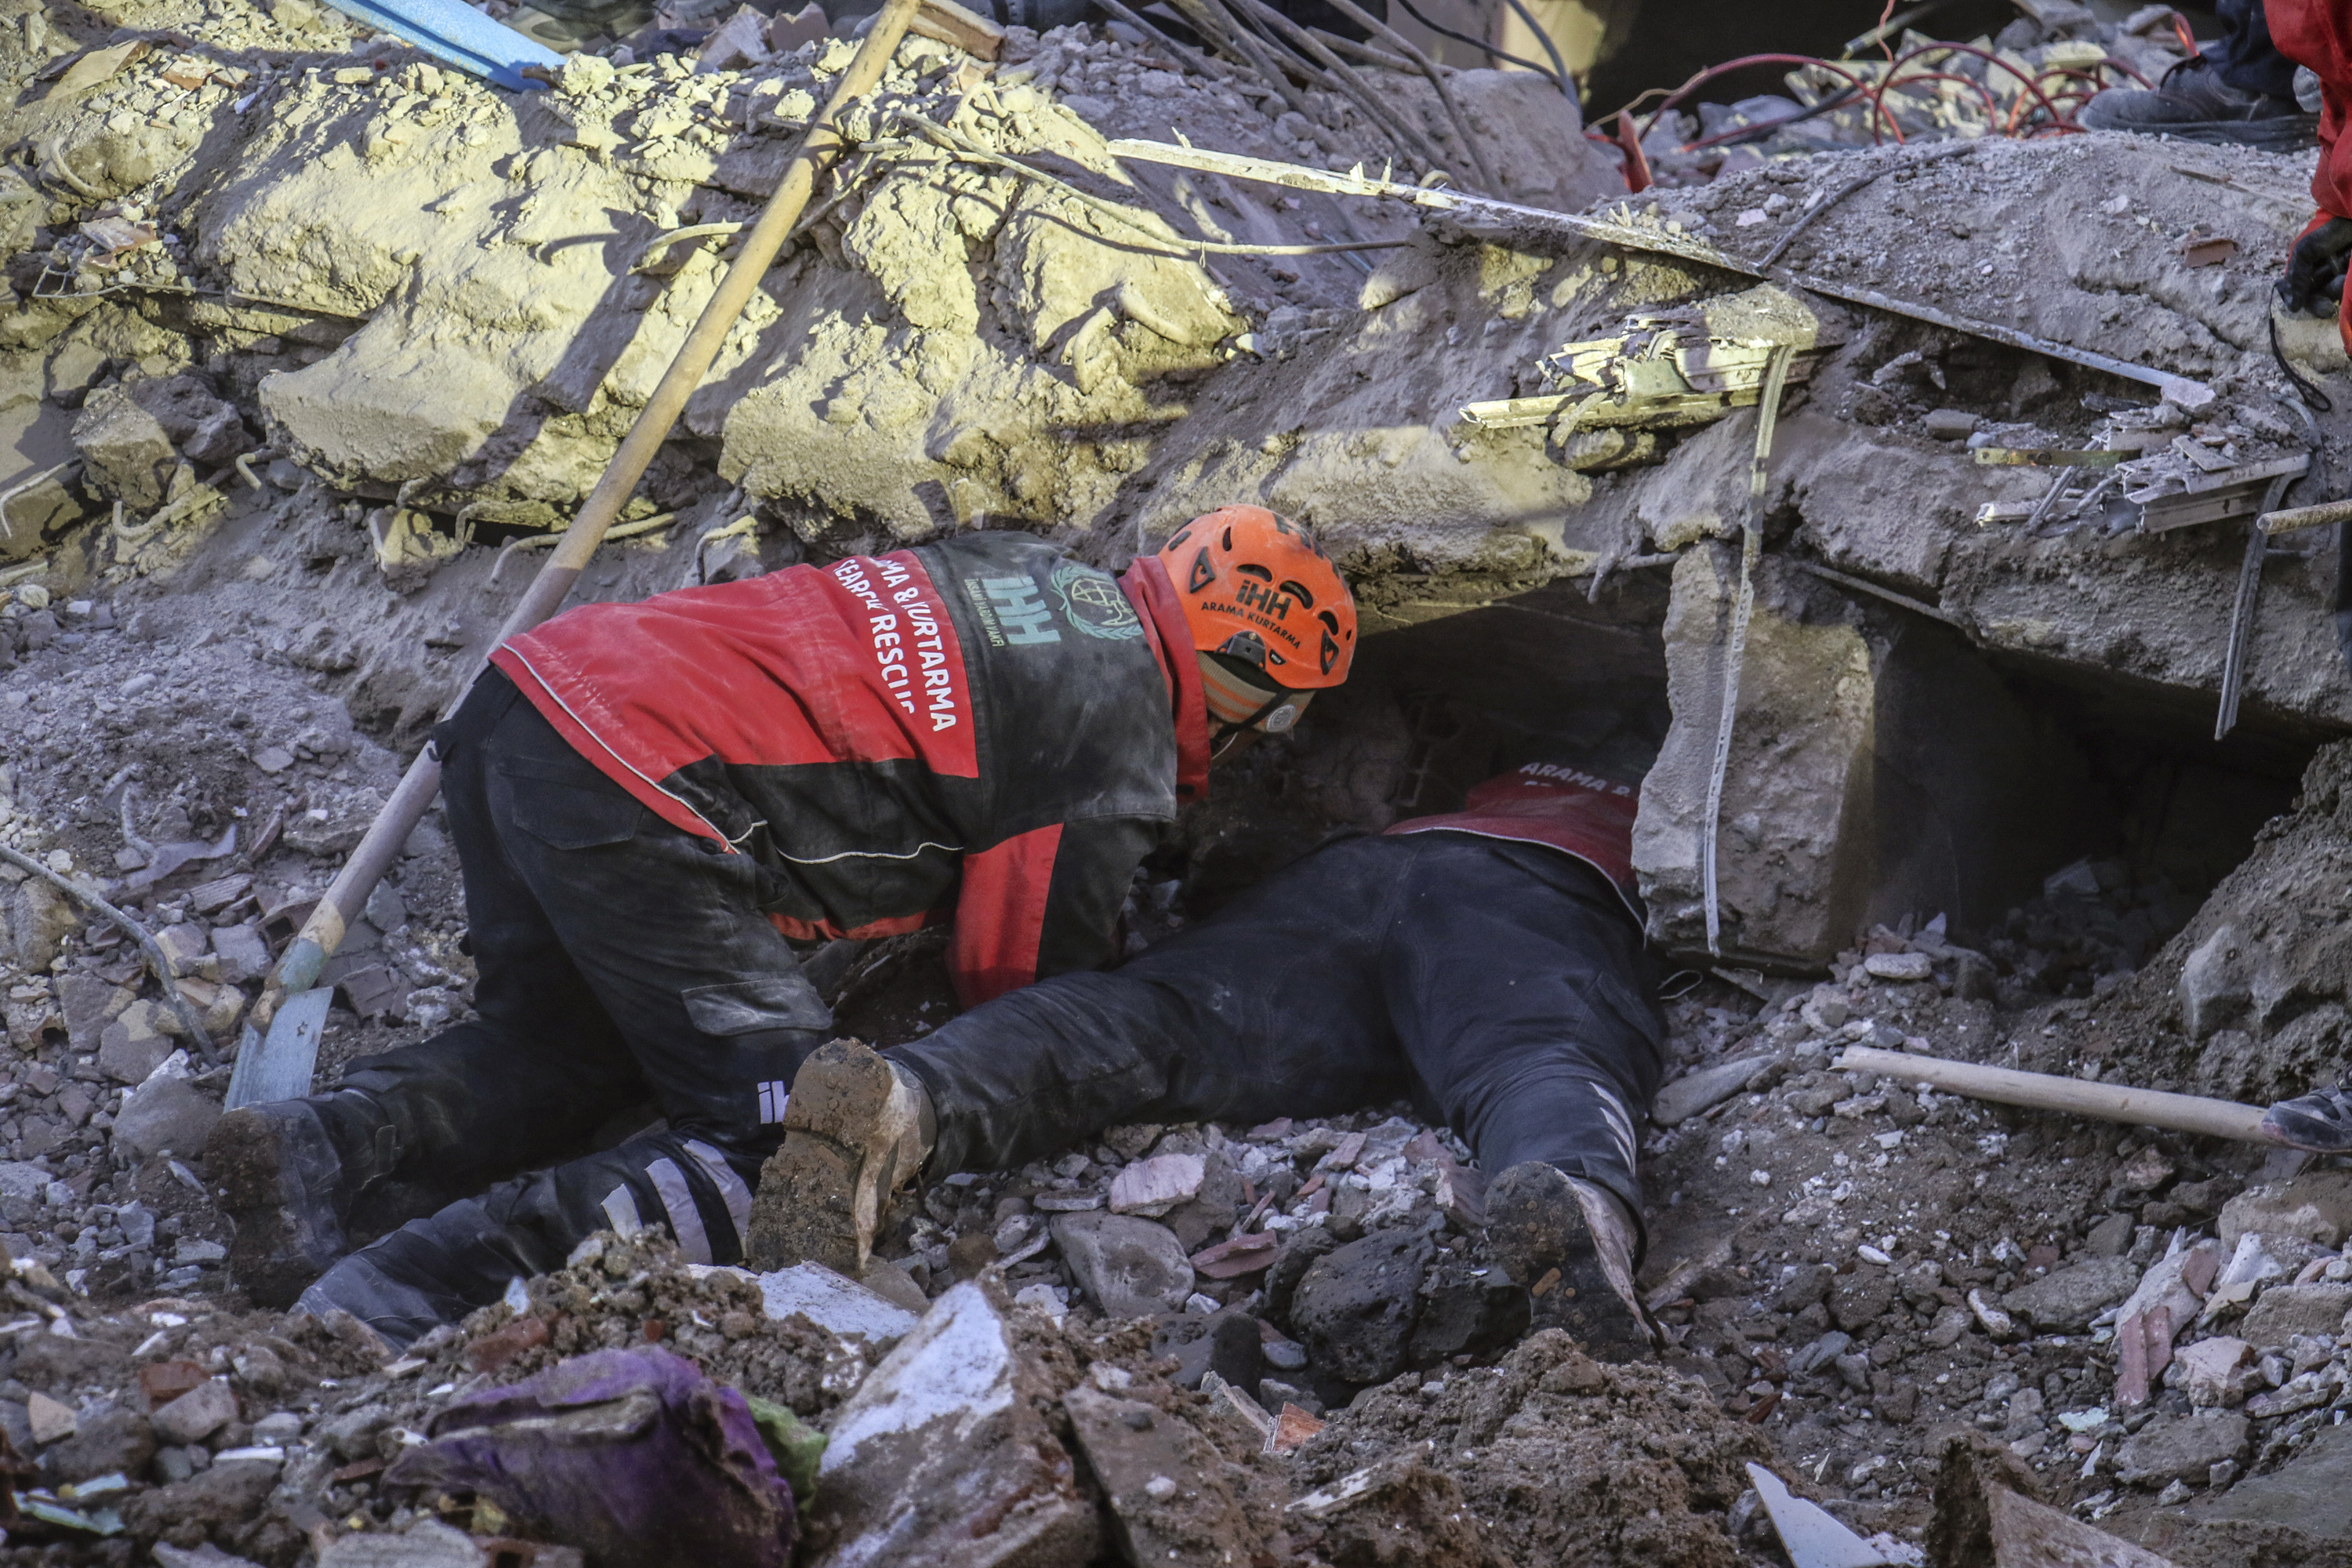 Rescue workers try to save people trapped under debris following a strong earthquake that destroyed several buildings on Friday, in Elazig, eastern Turkey, on Jan. 26, 2020.